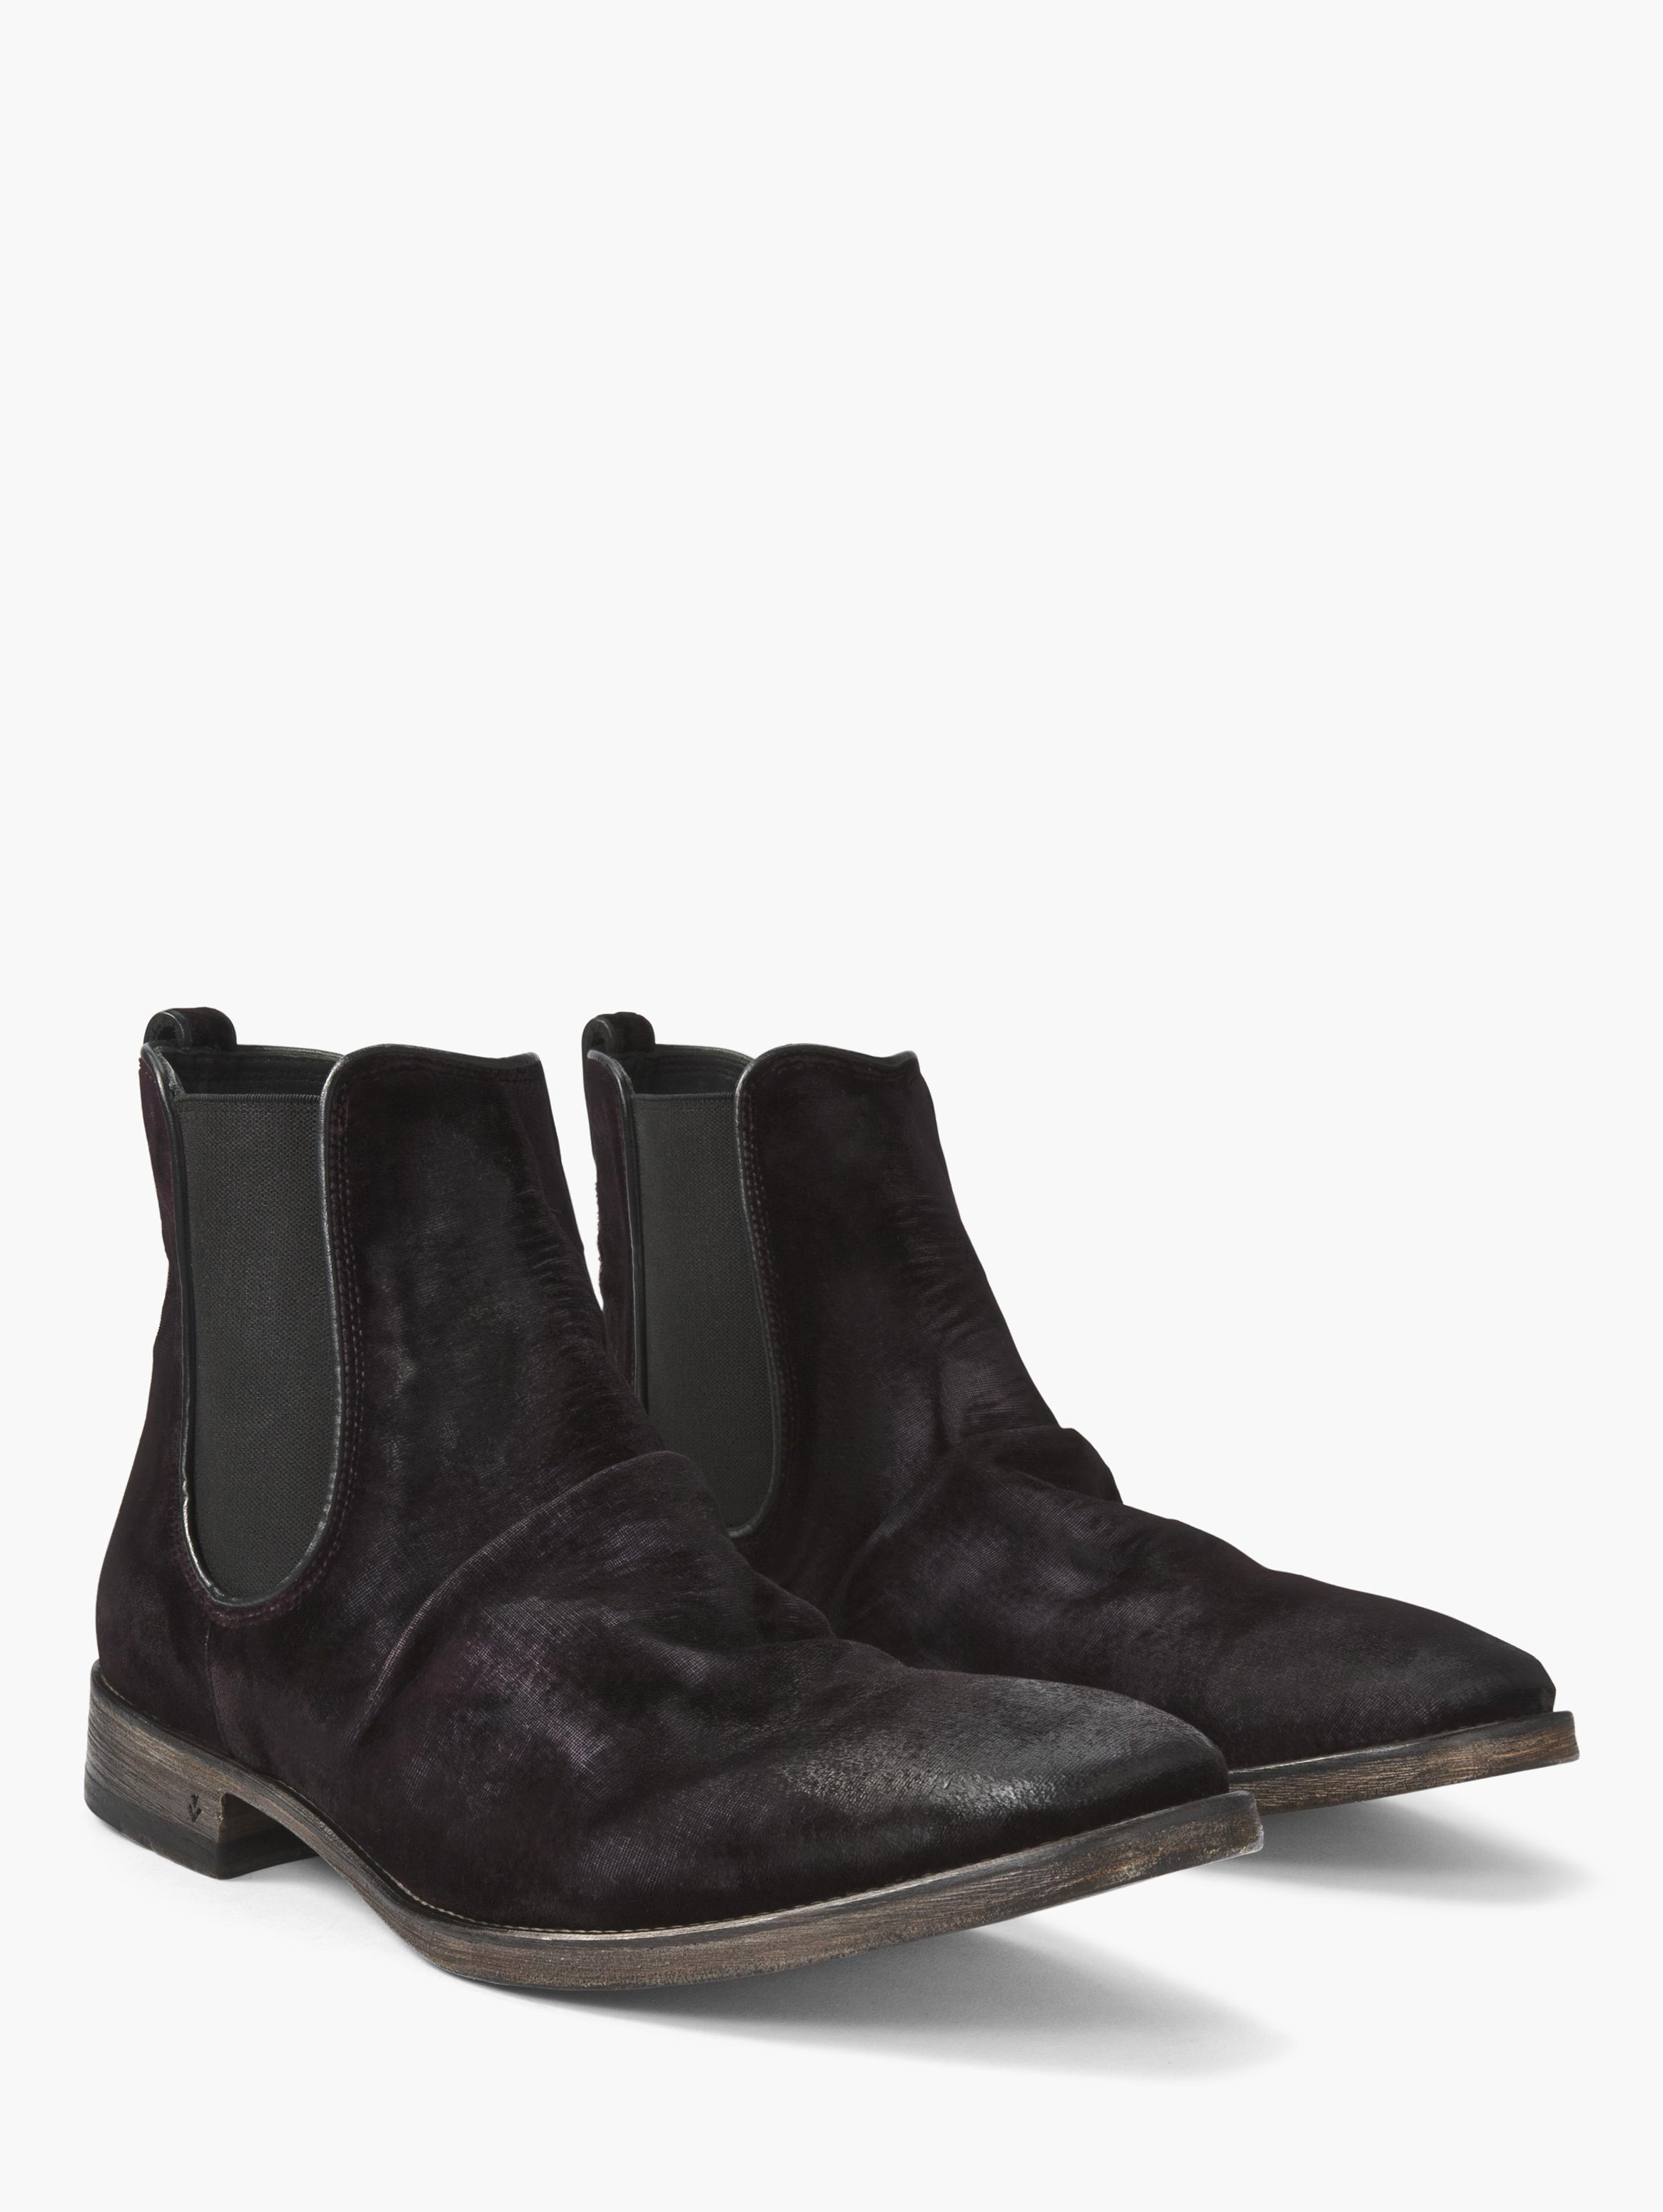 Fleetwood Sharpei Chelsea Boot